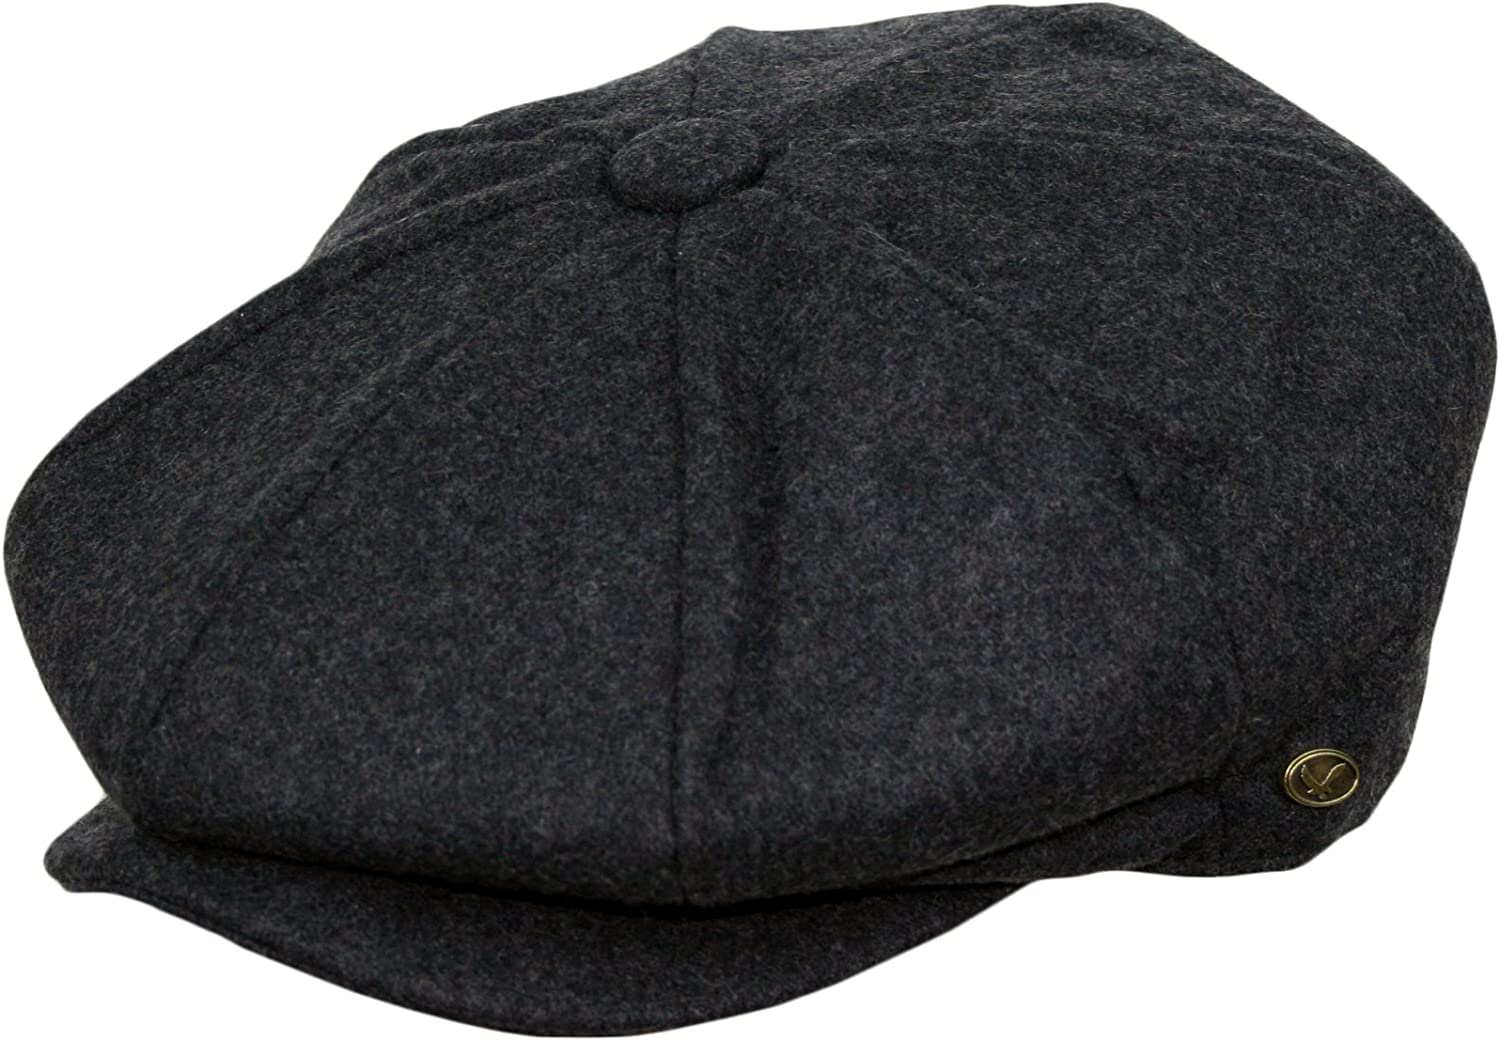 Epoch Mens Classic 8 Panel Wool Blend newsboy Snap Brim Collection Hat